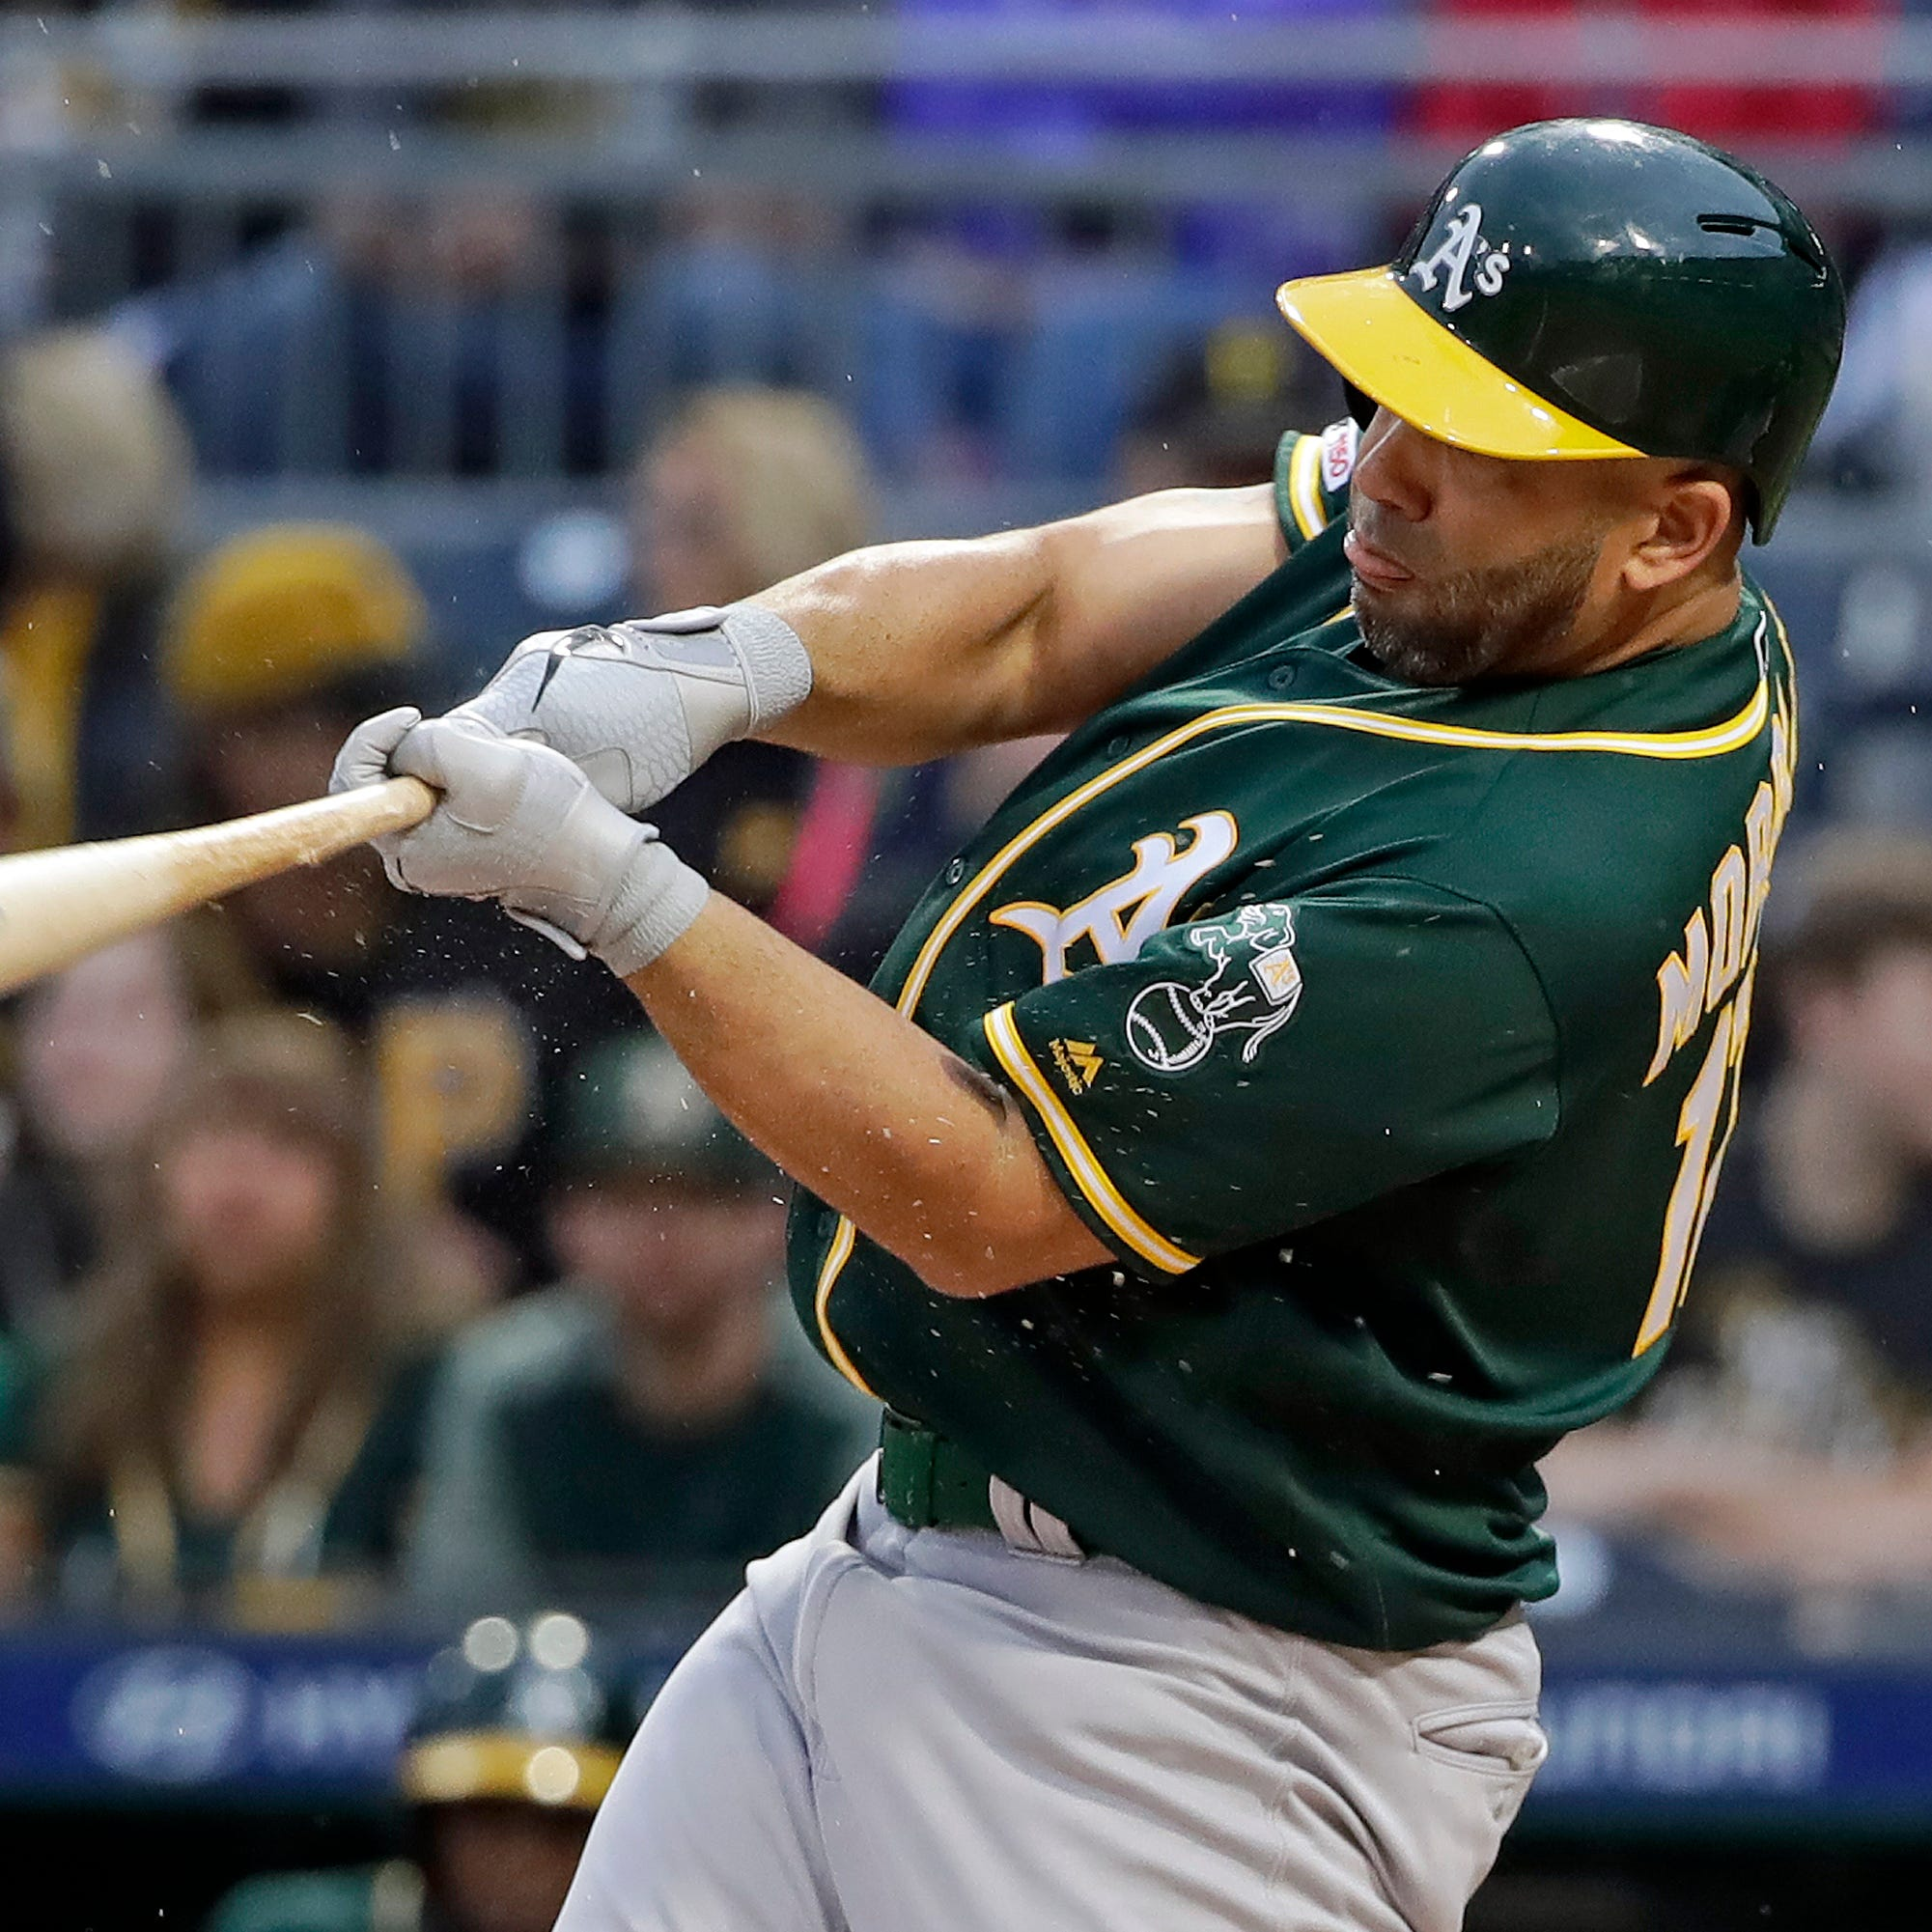 New York Yankees acquire Kendrys Morales from the Oakland A's